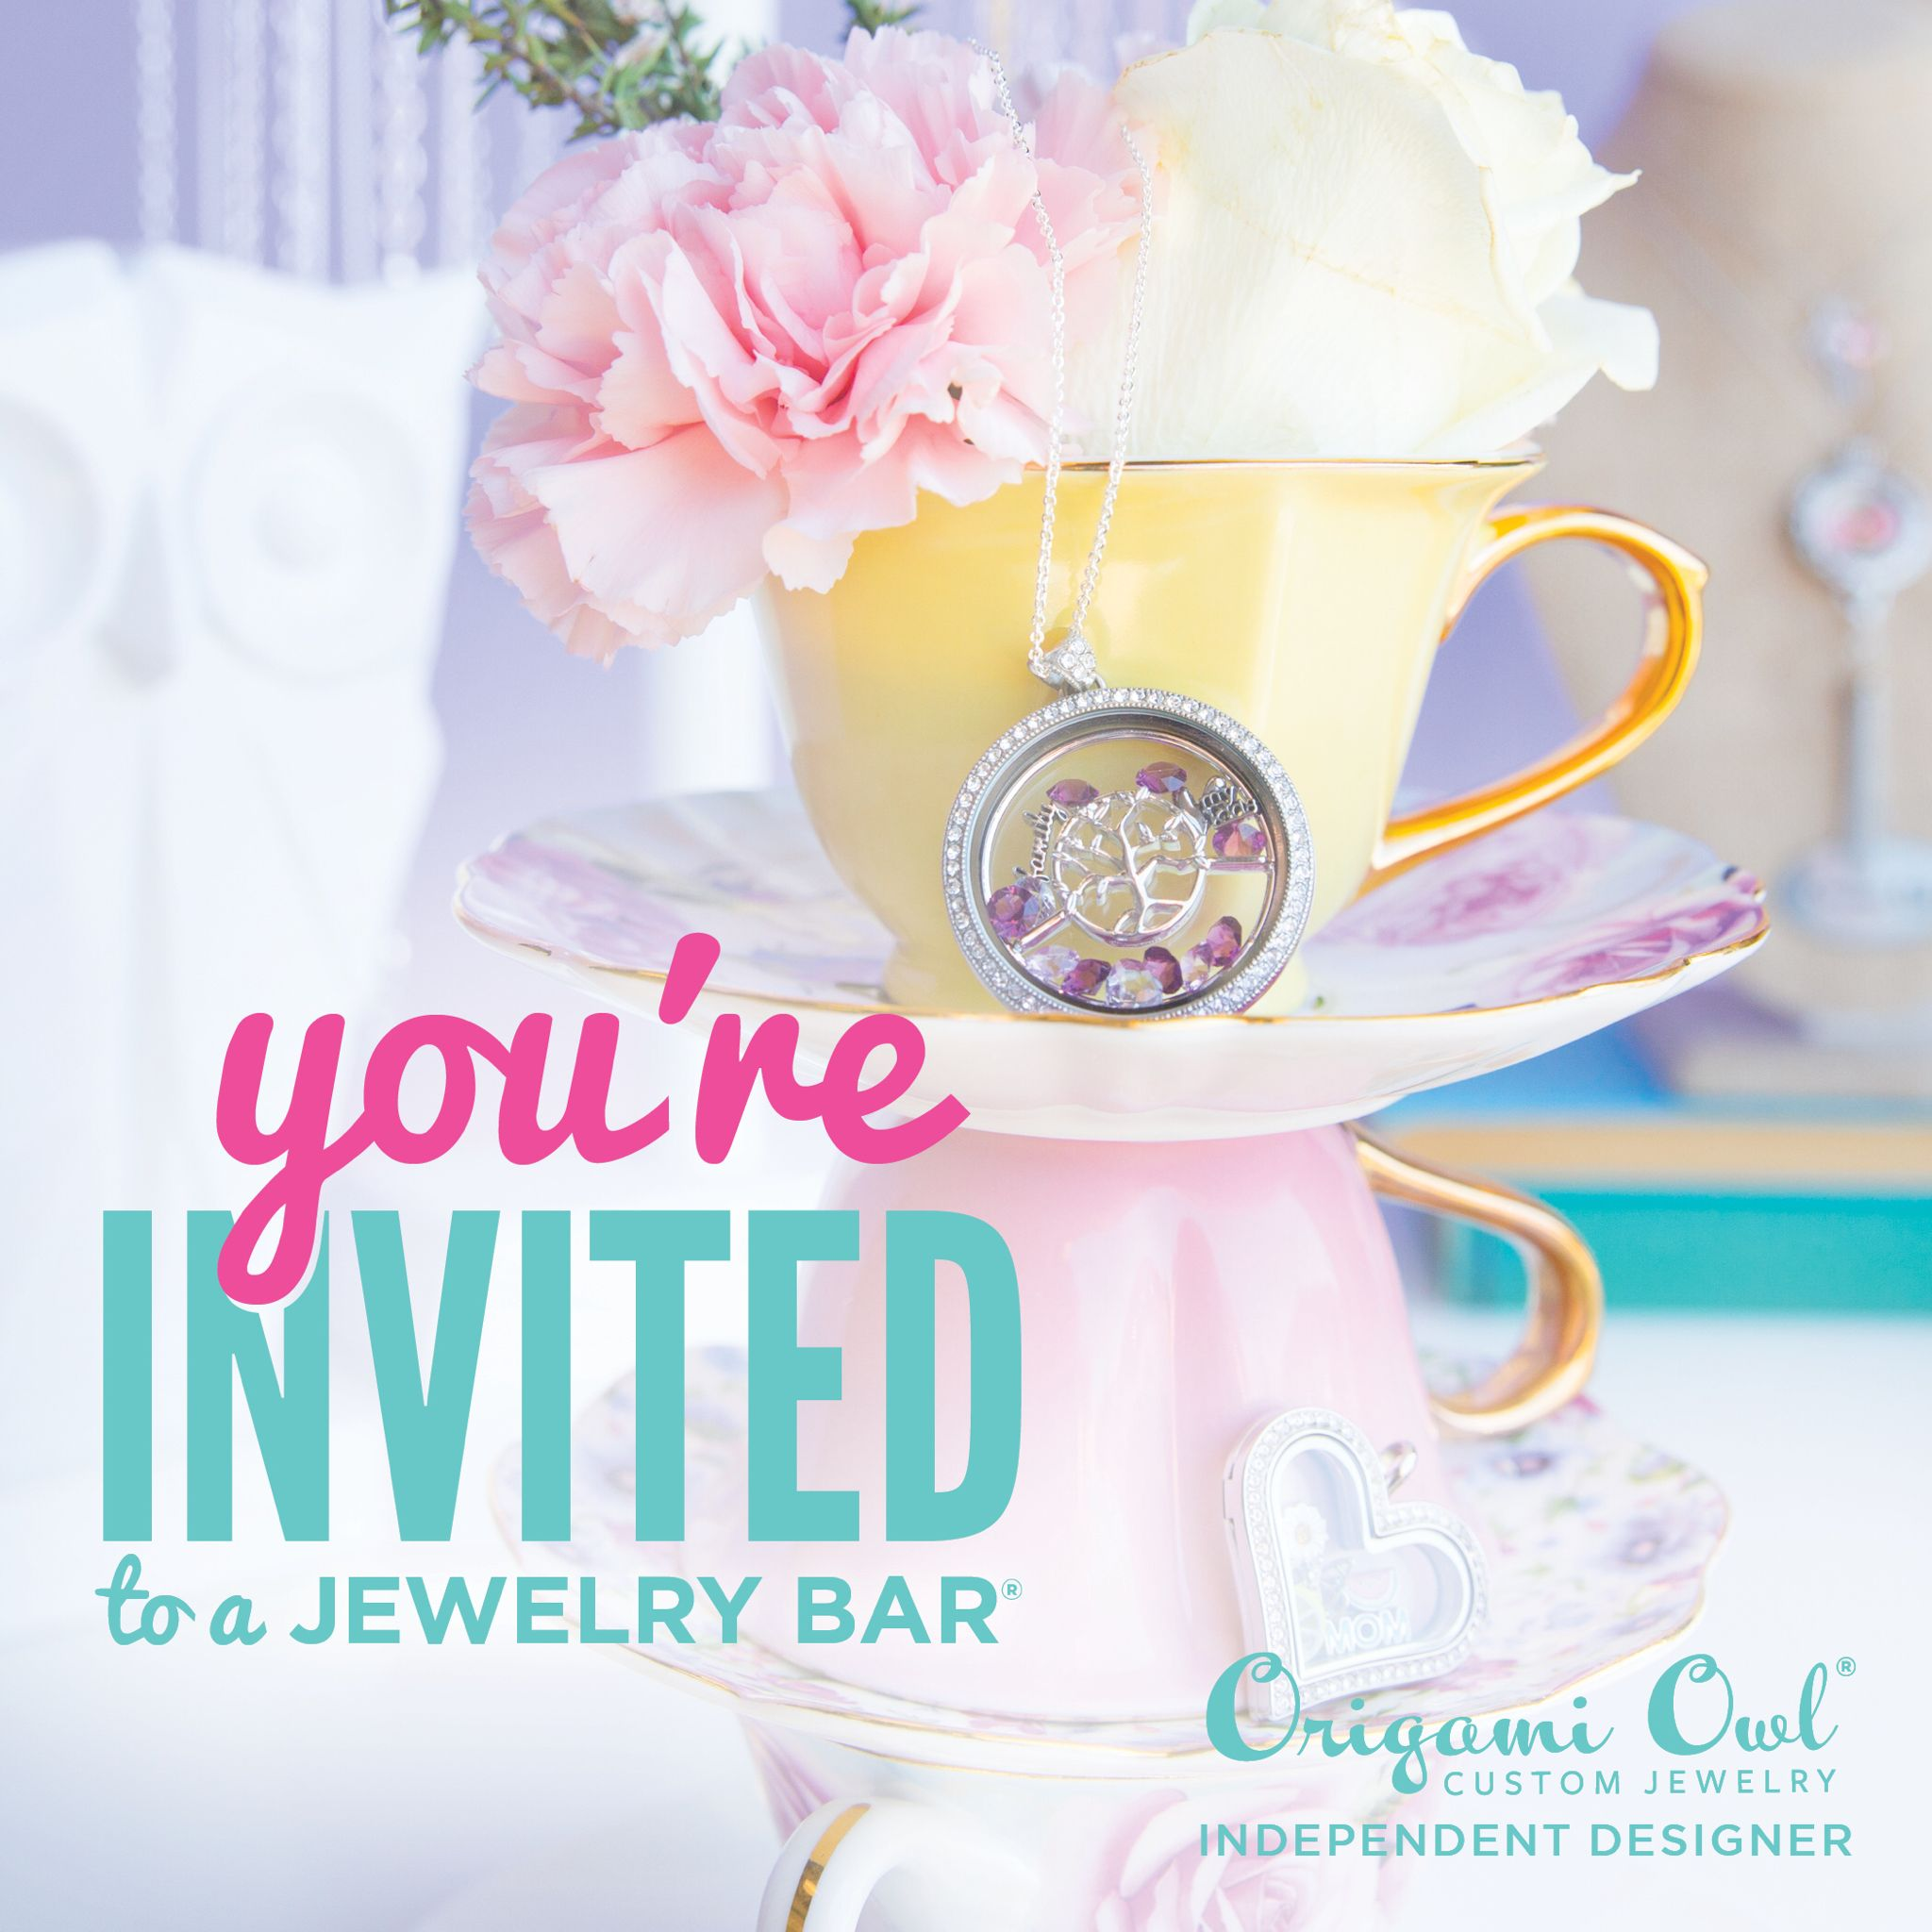 Origami Owl. You're invited to a jewelry bar! www ... - photo#41